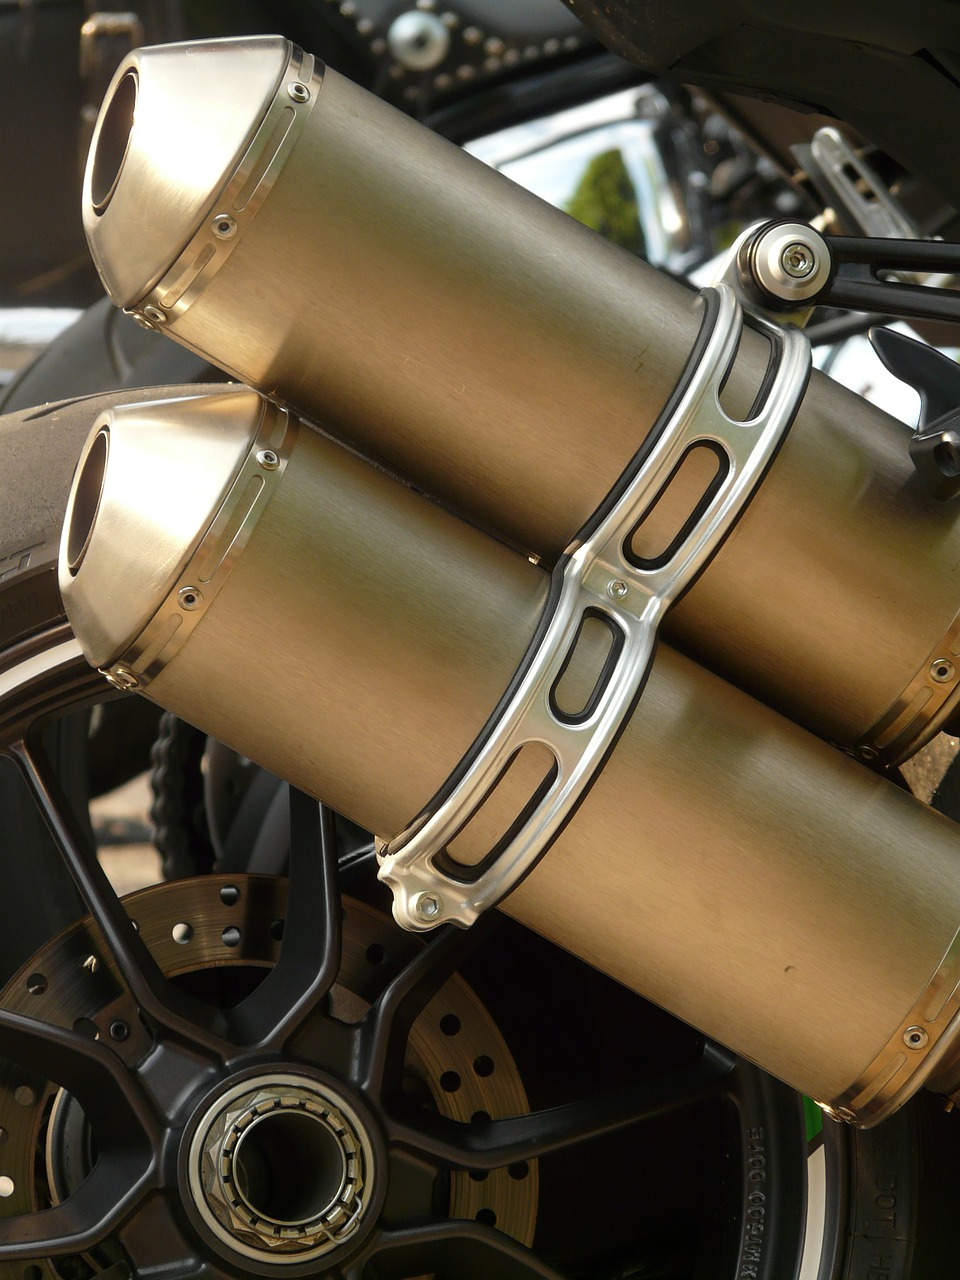 exhaust exhaust pipes motorcycle free photo